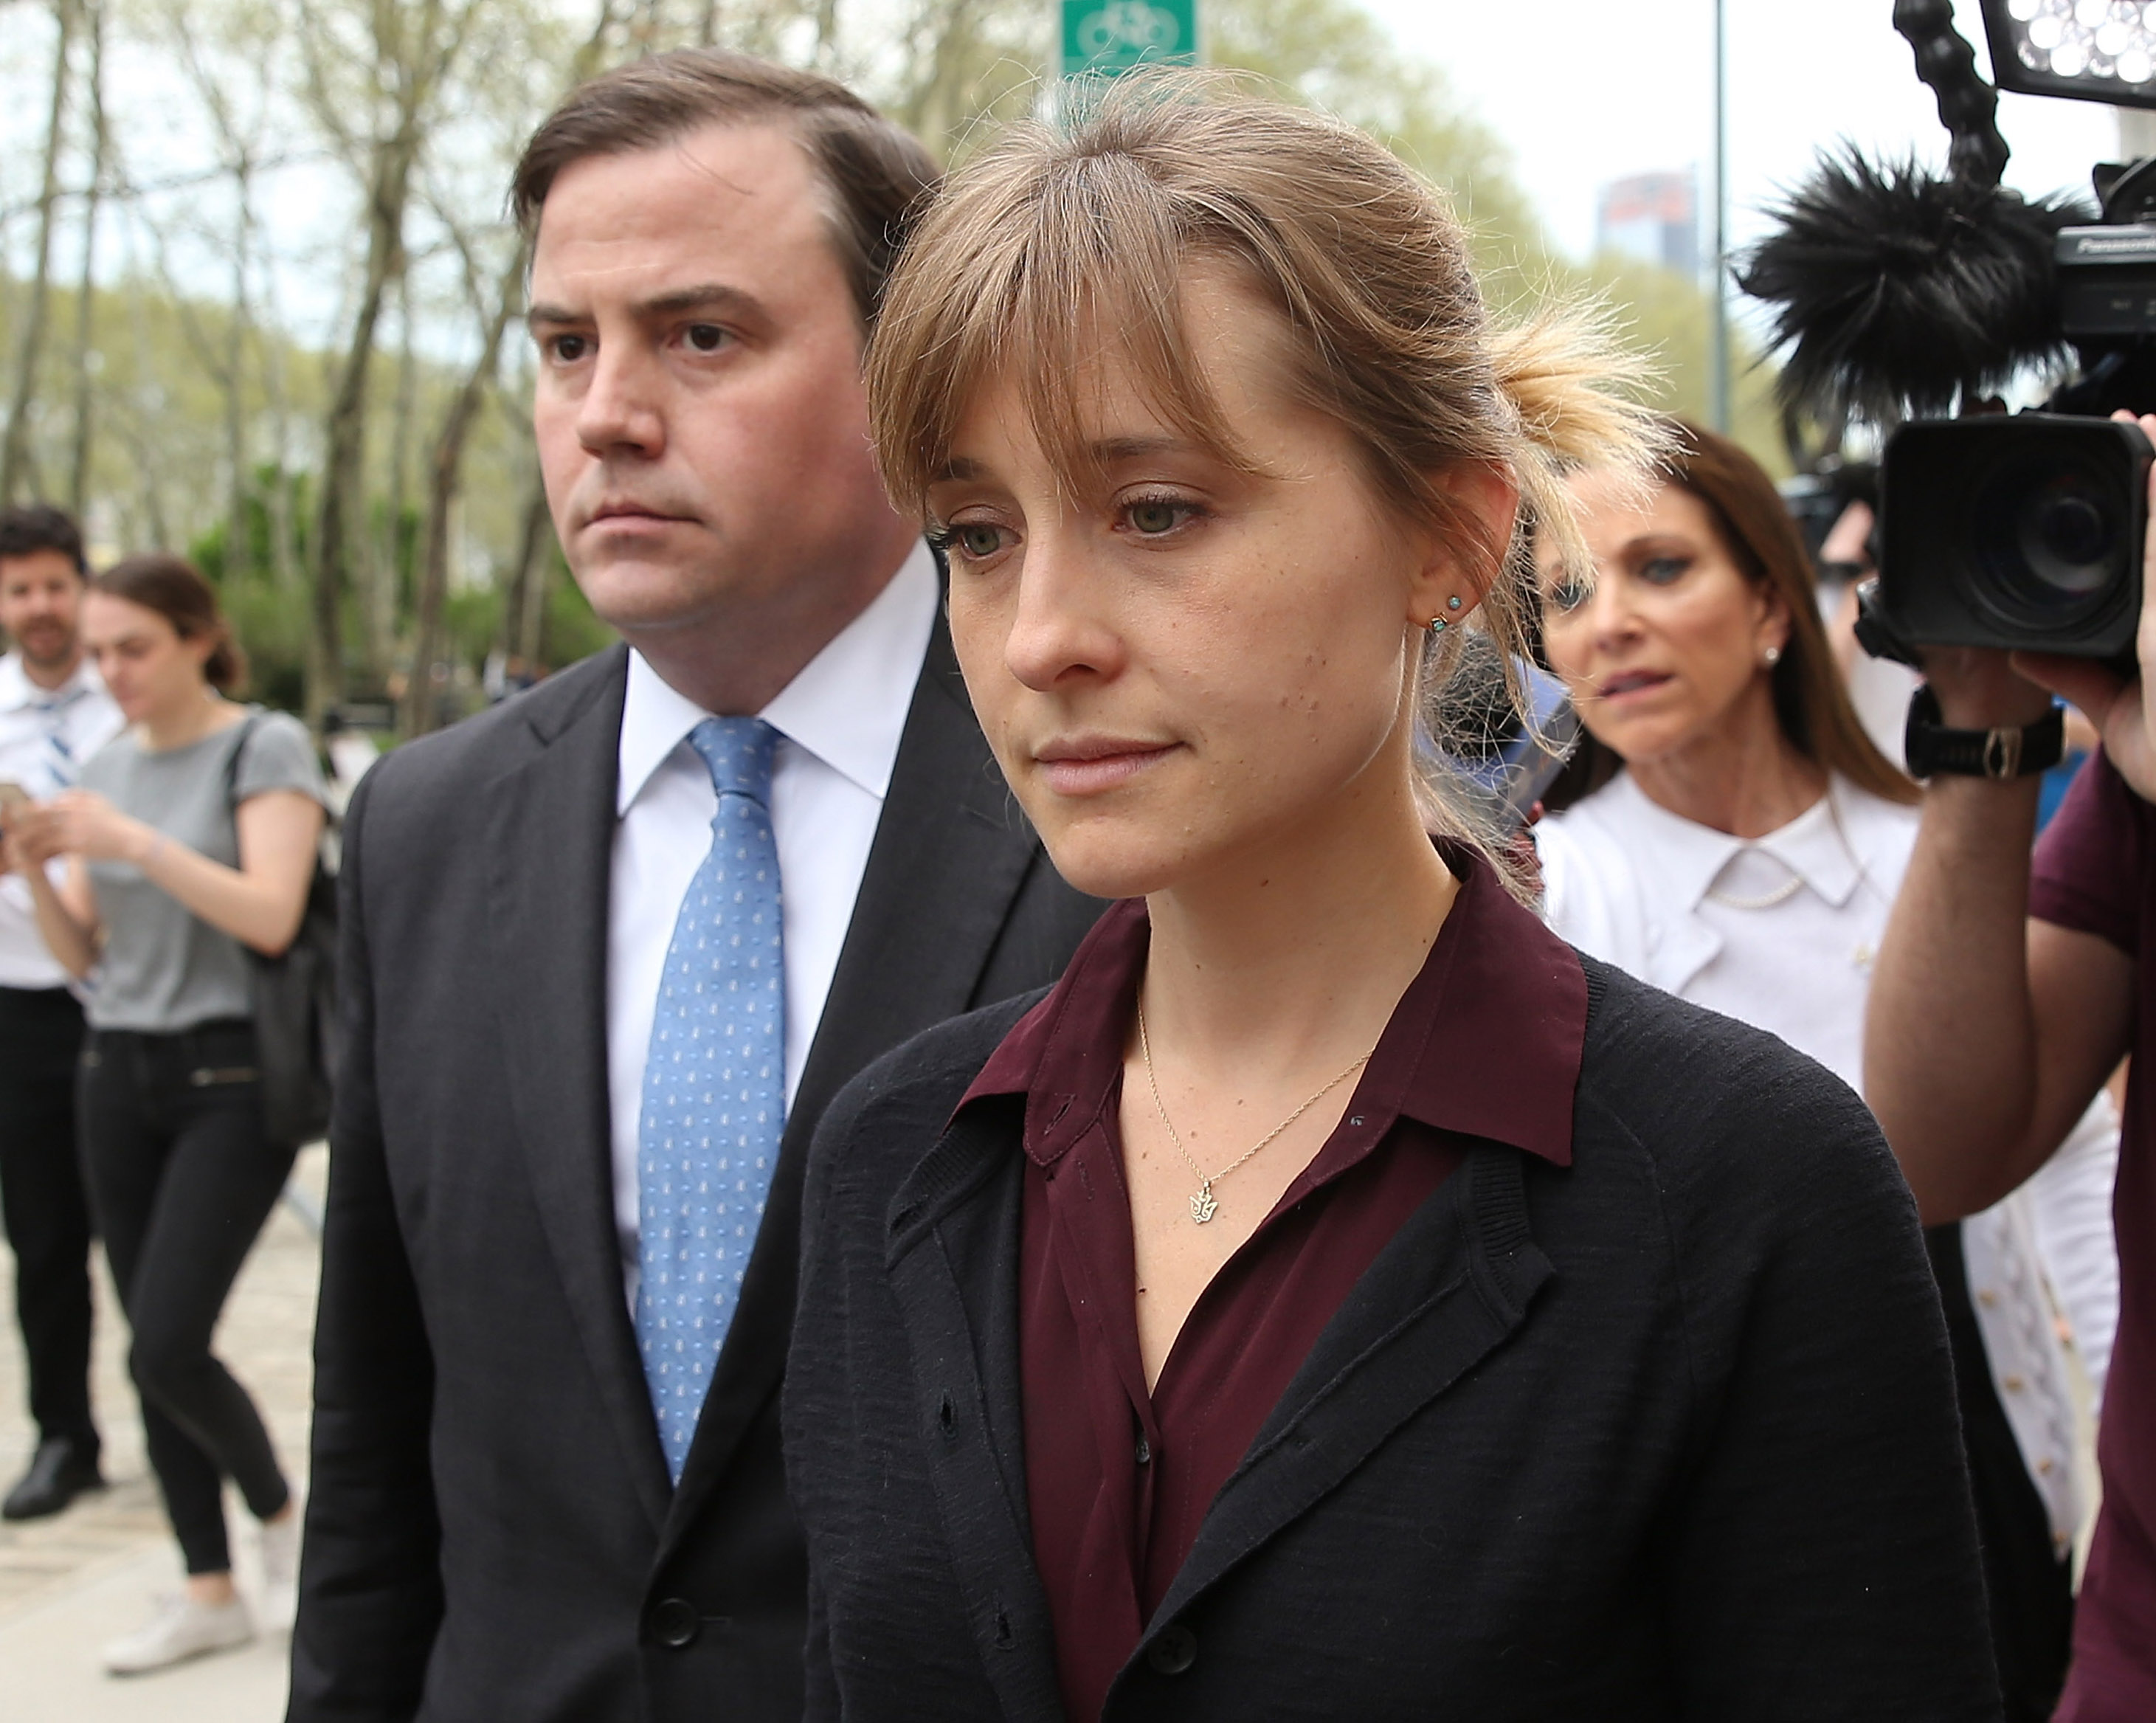 Allison Mack, right, departs the United States Eastern District Court in 2019.